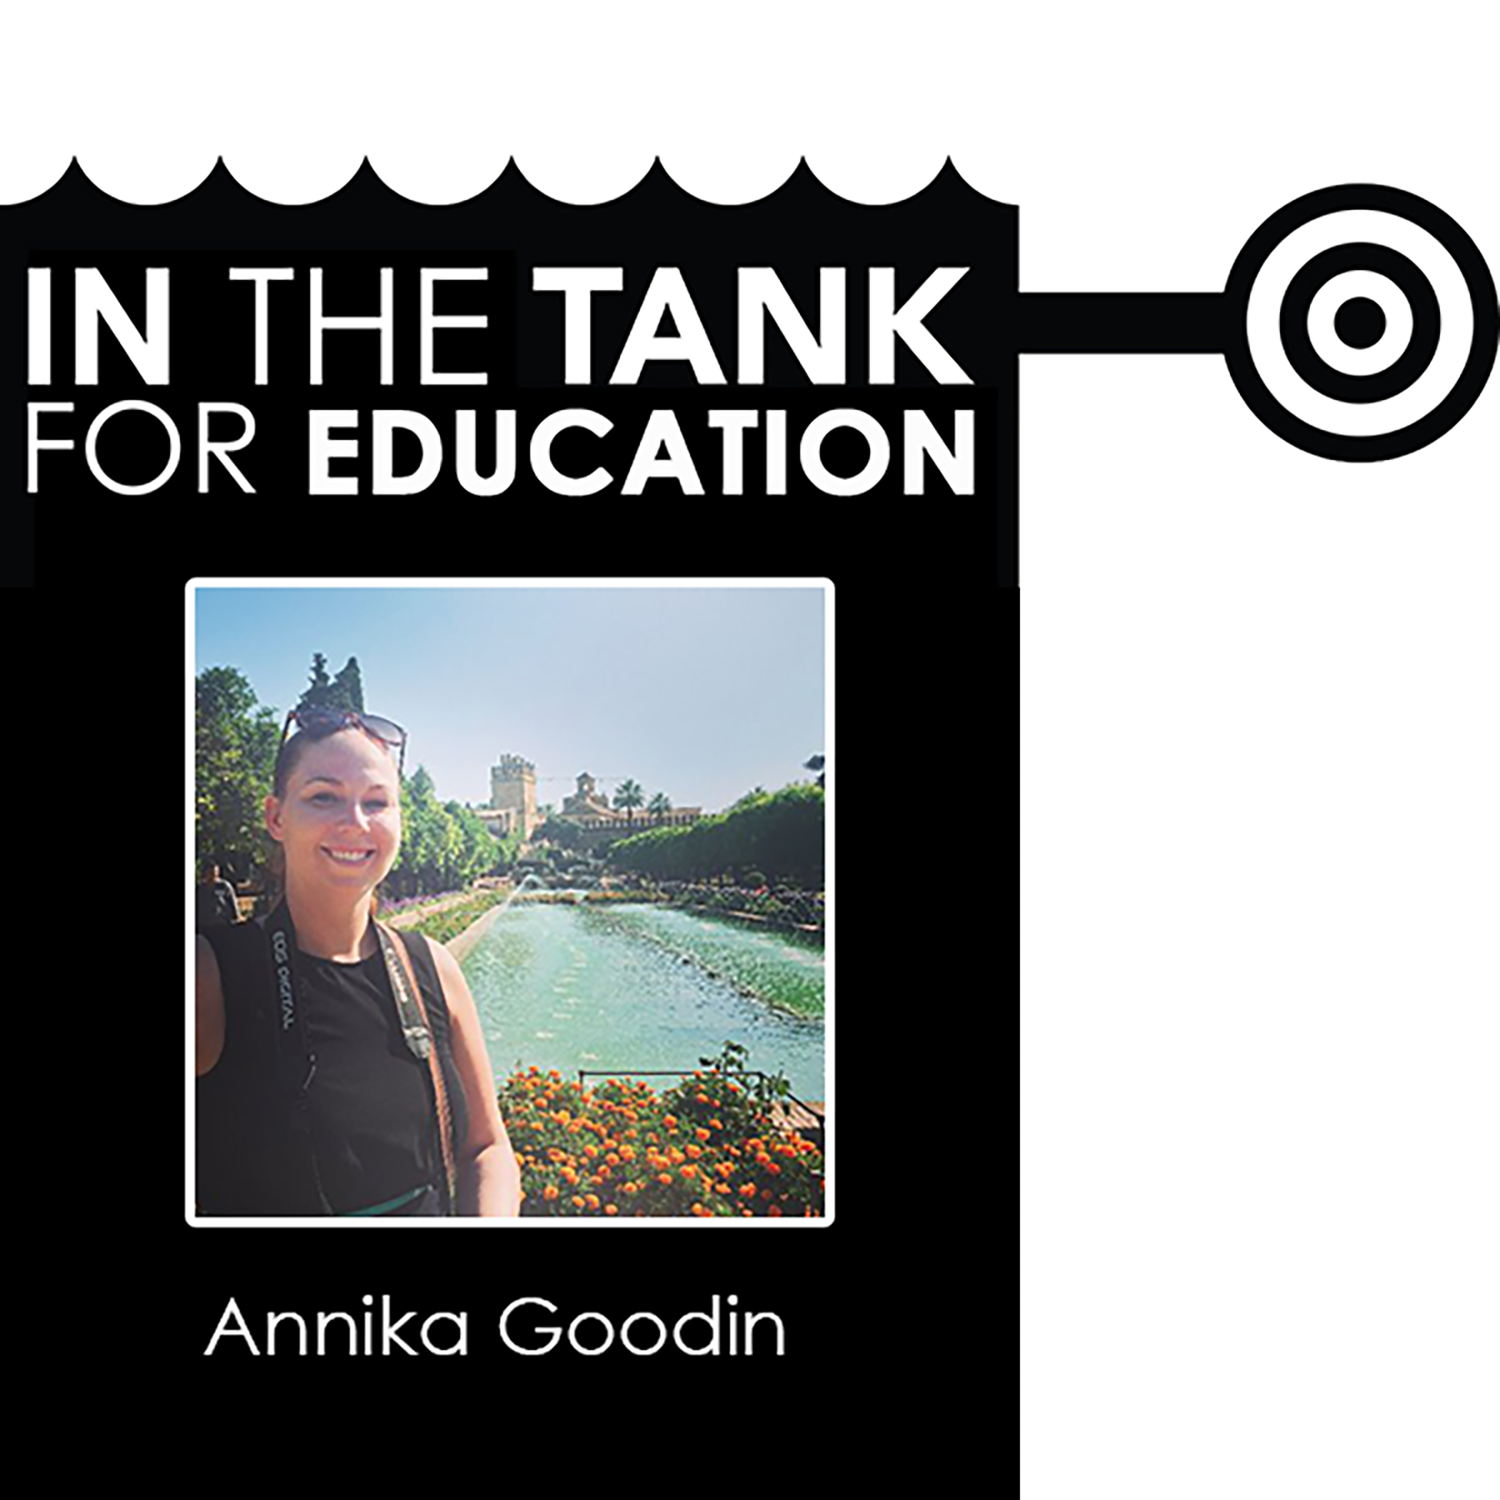 Episode 6: Annika Goodin; Next Generation Science Standards, OER and more